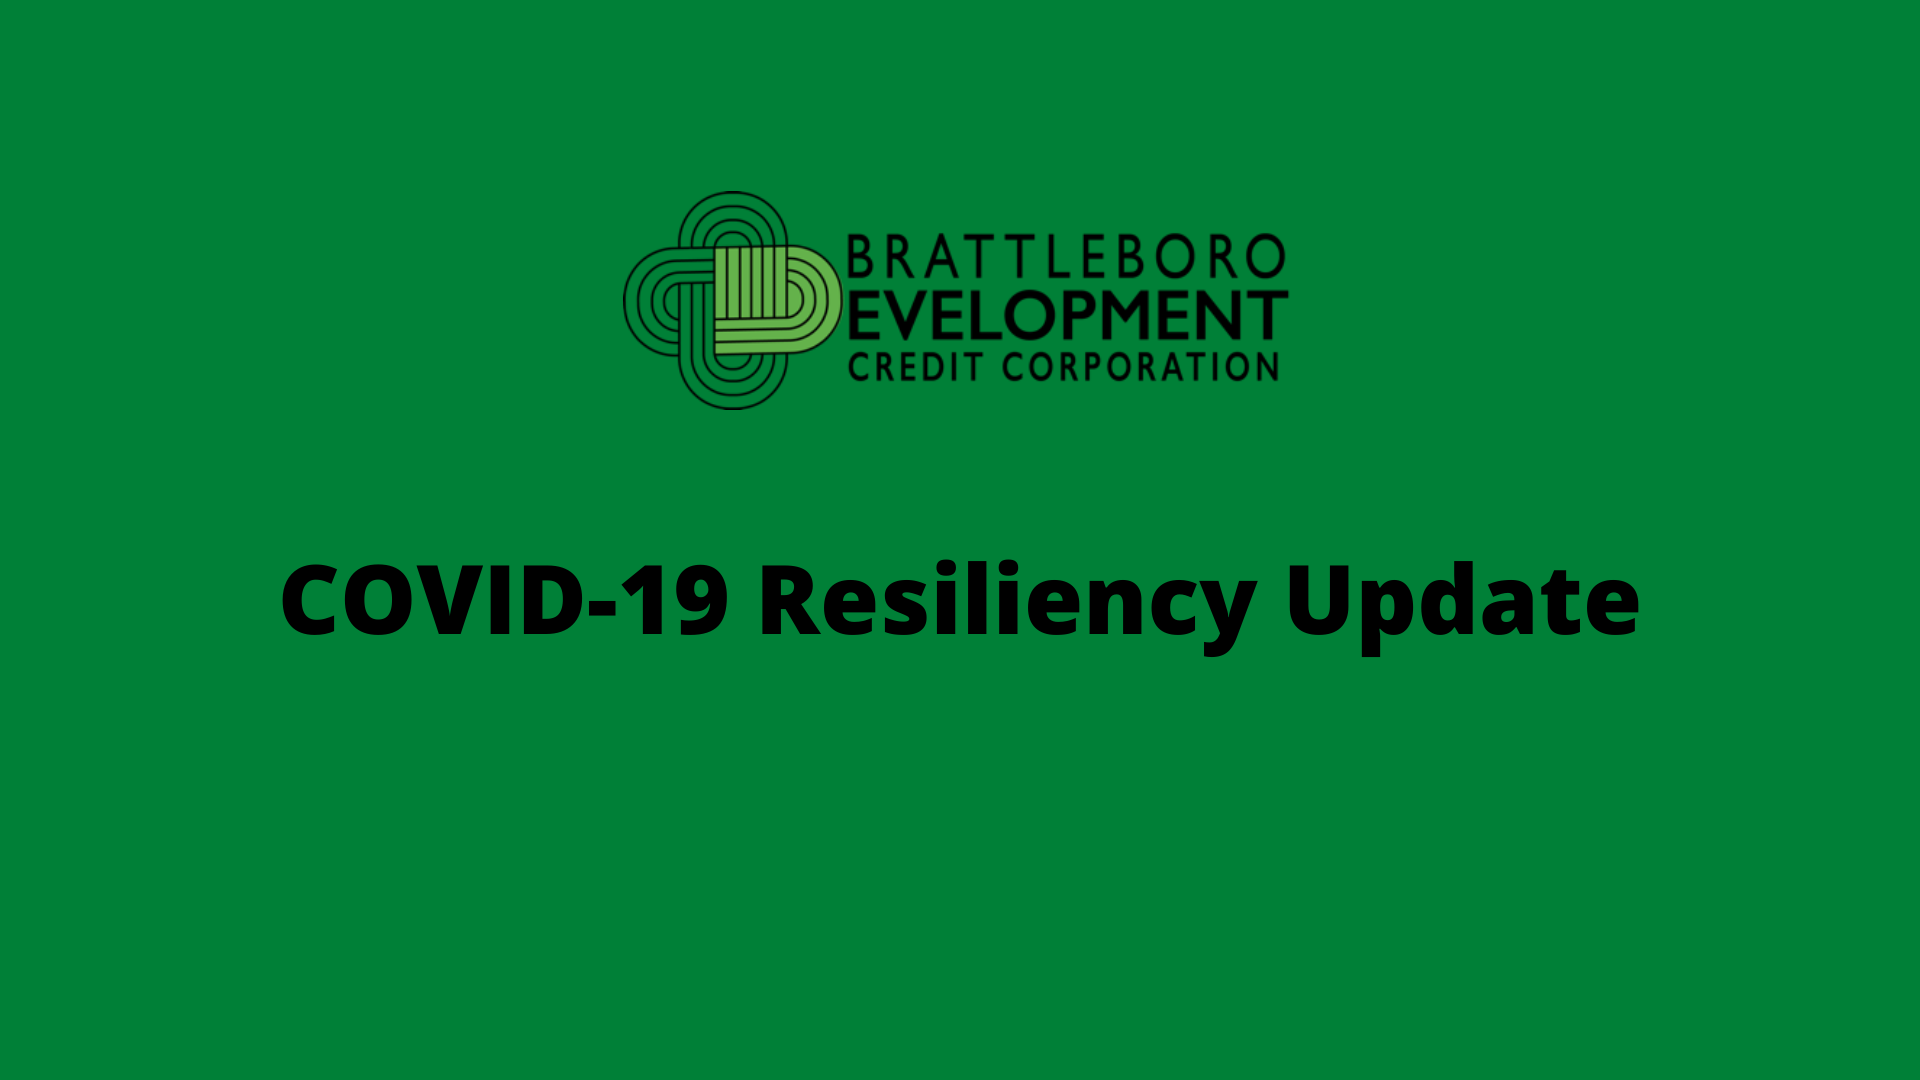 COVID-19 Resiliency Update 5/11/20